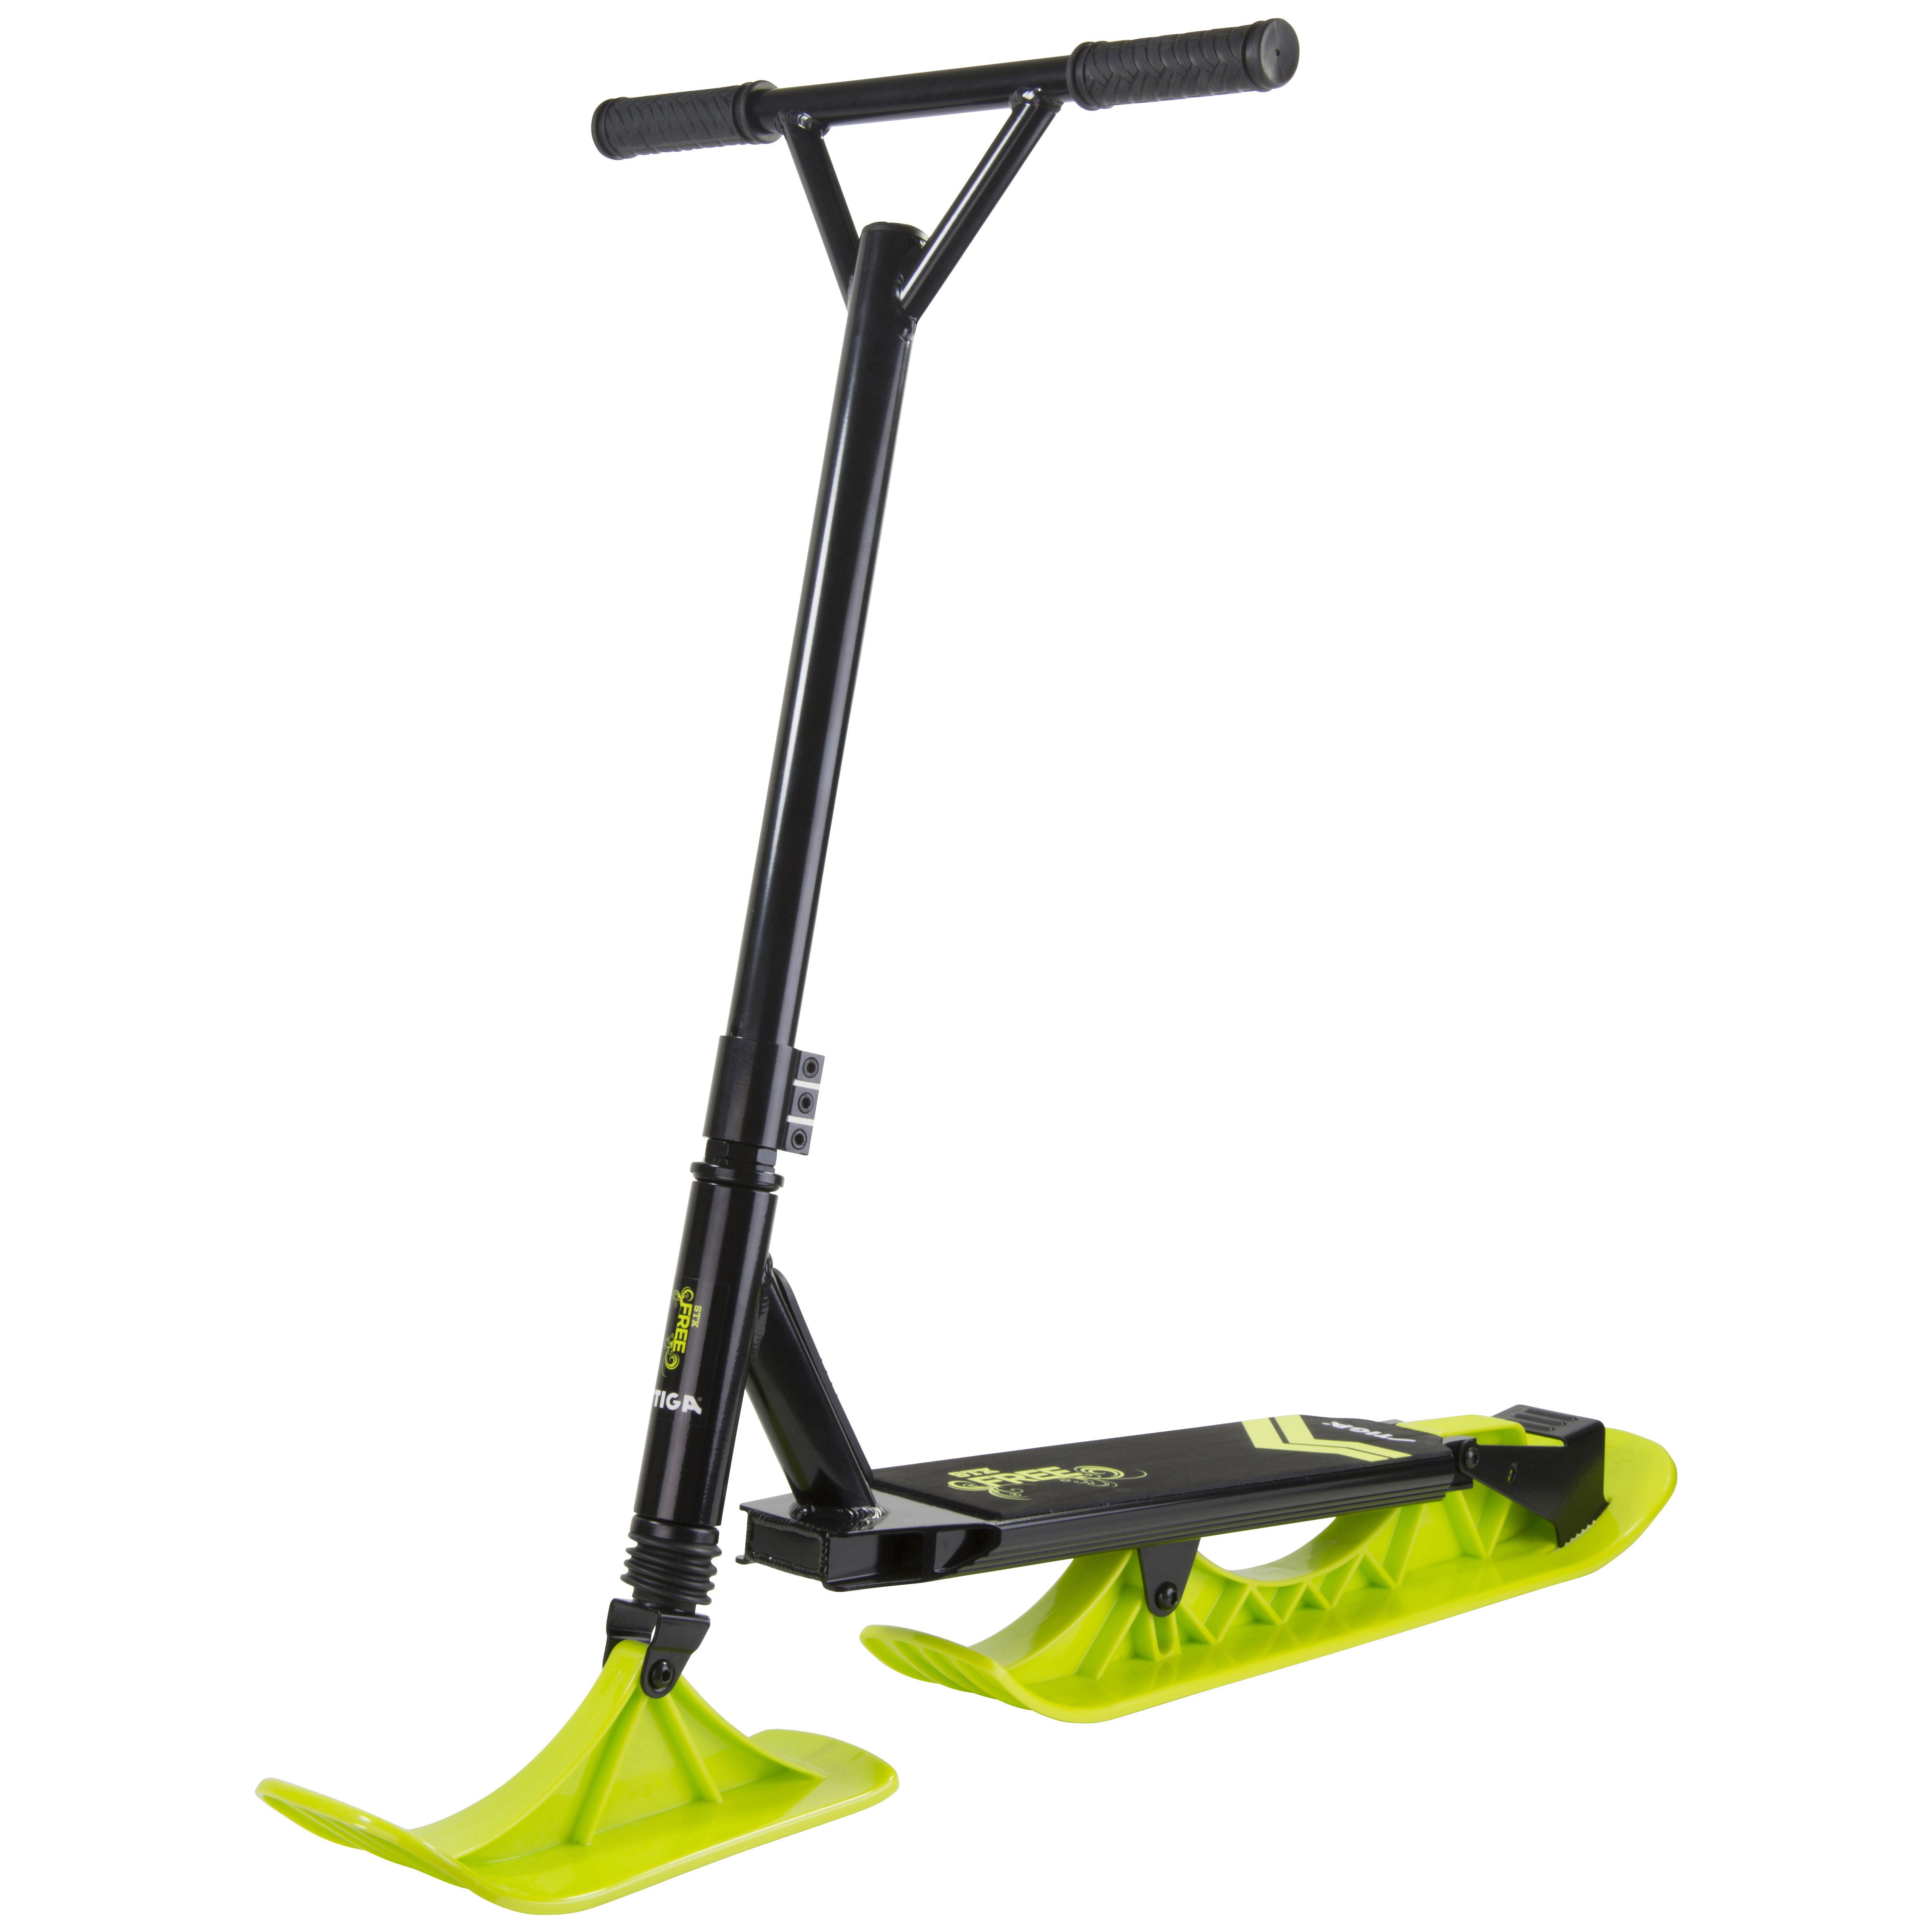 Stiga - Snow Kick STX Free Scooter - Black/Lime (75-1127-19)